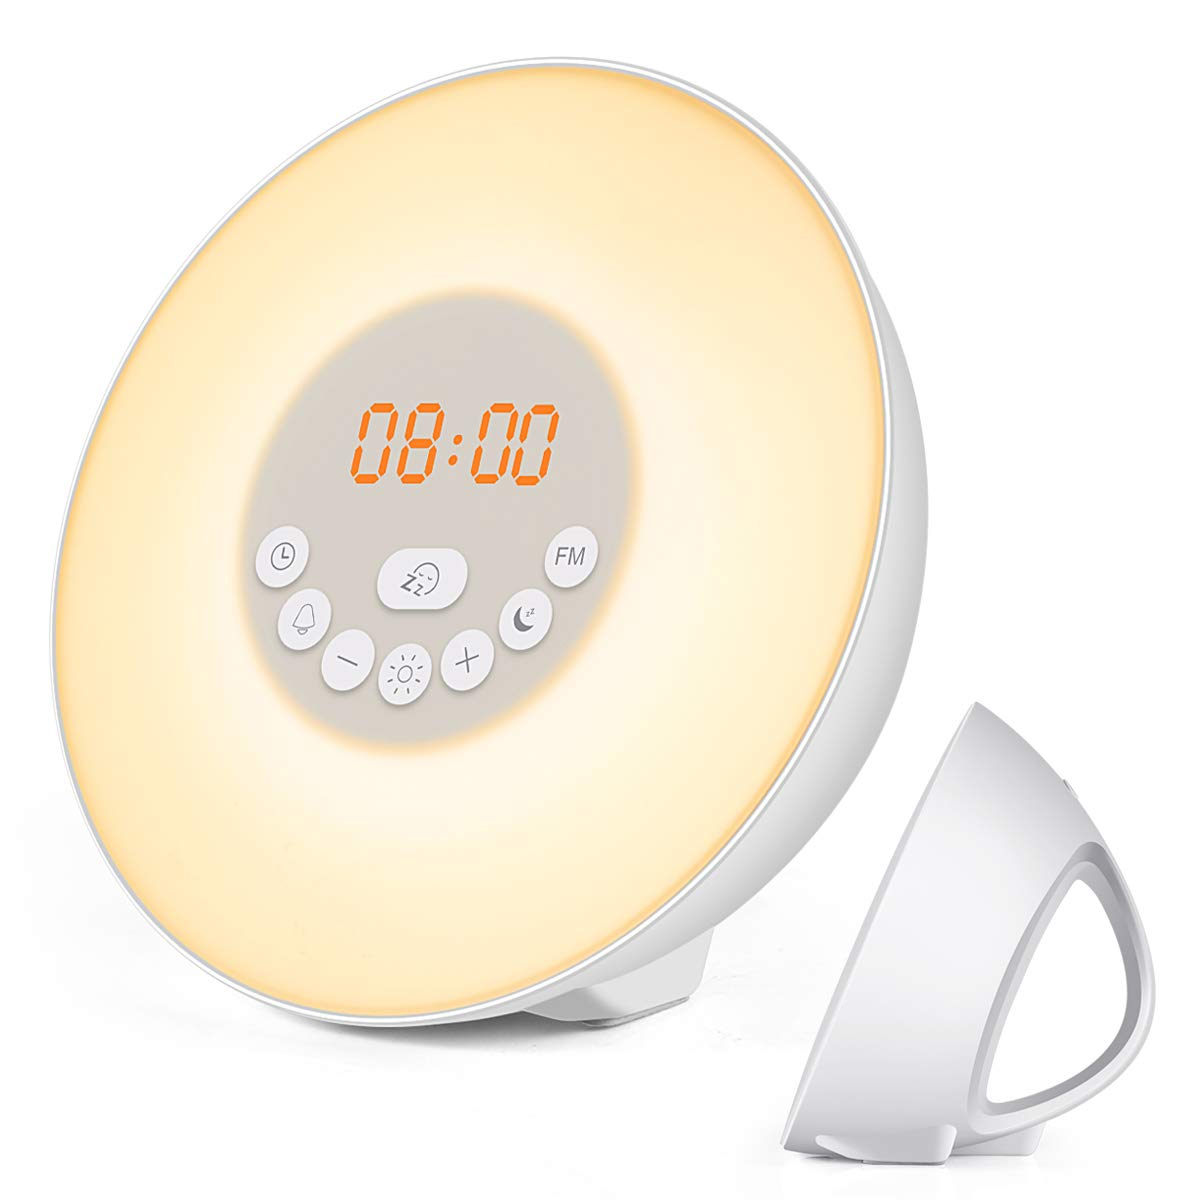 Sunrise Alarm Clock - $28.99